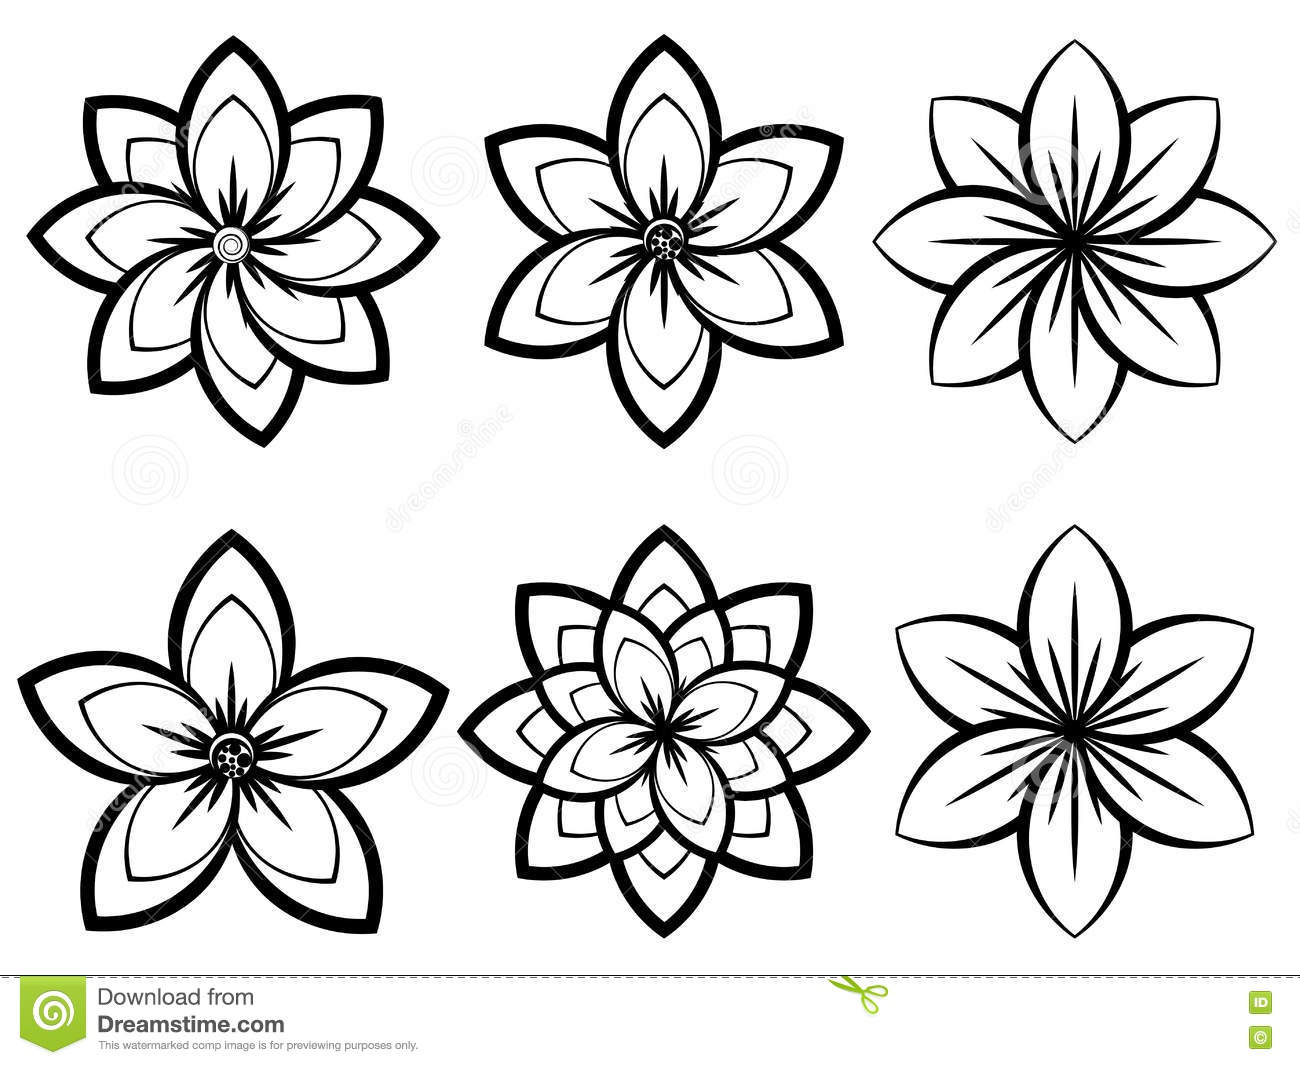 Excellent simple black and white flower pictures inspiration beautiful simple black and white flowers images images for wedding mightylinksfo Choice Image